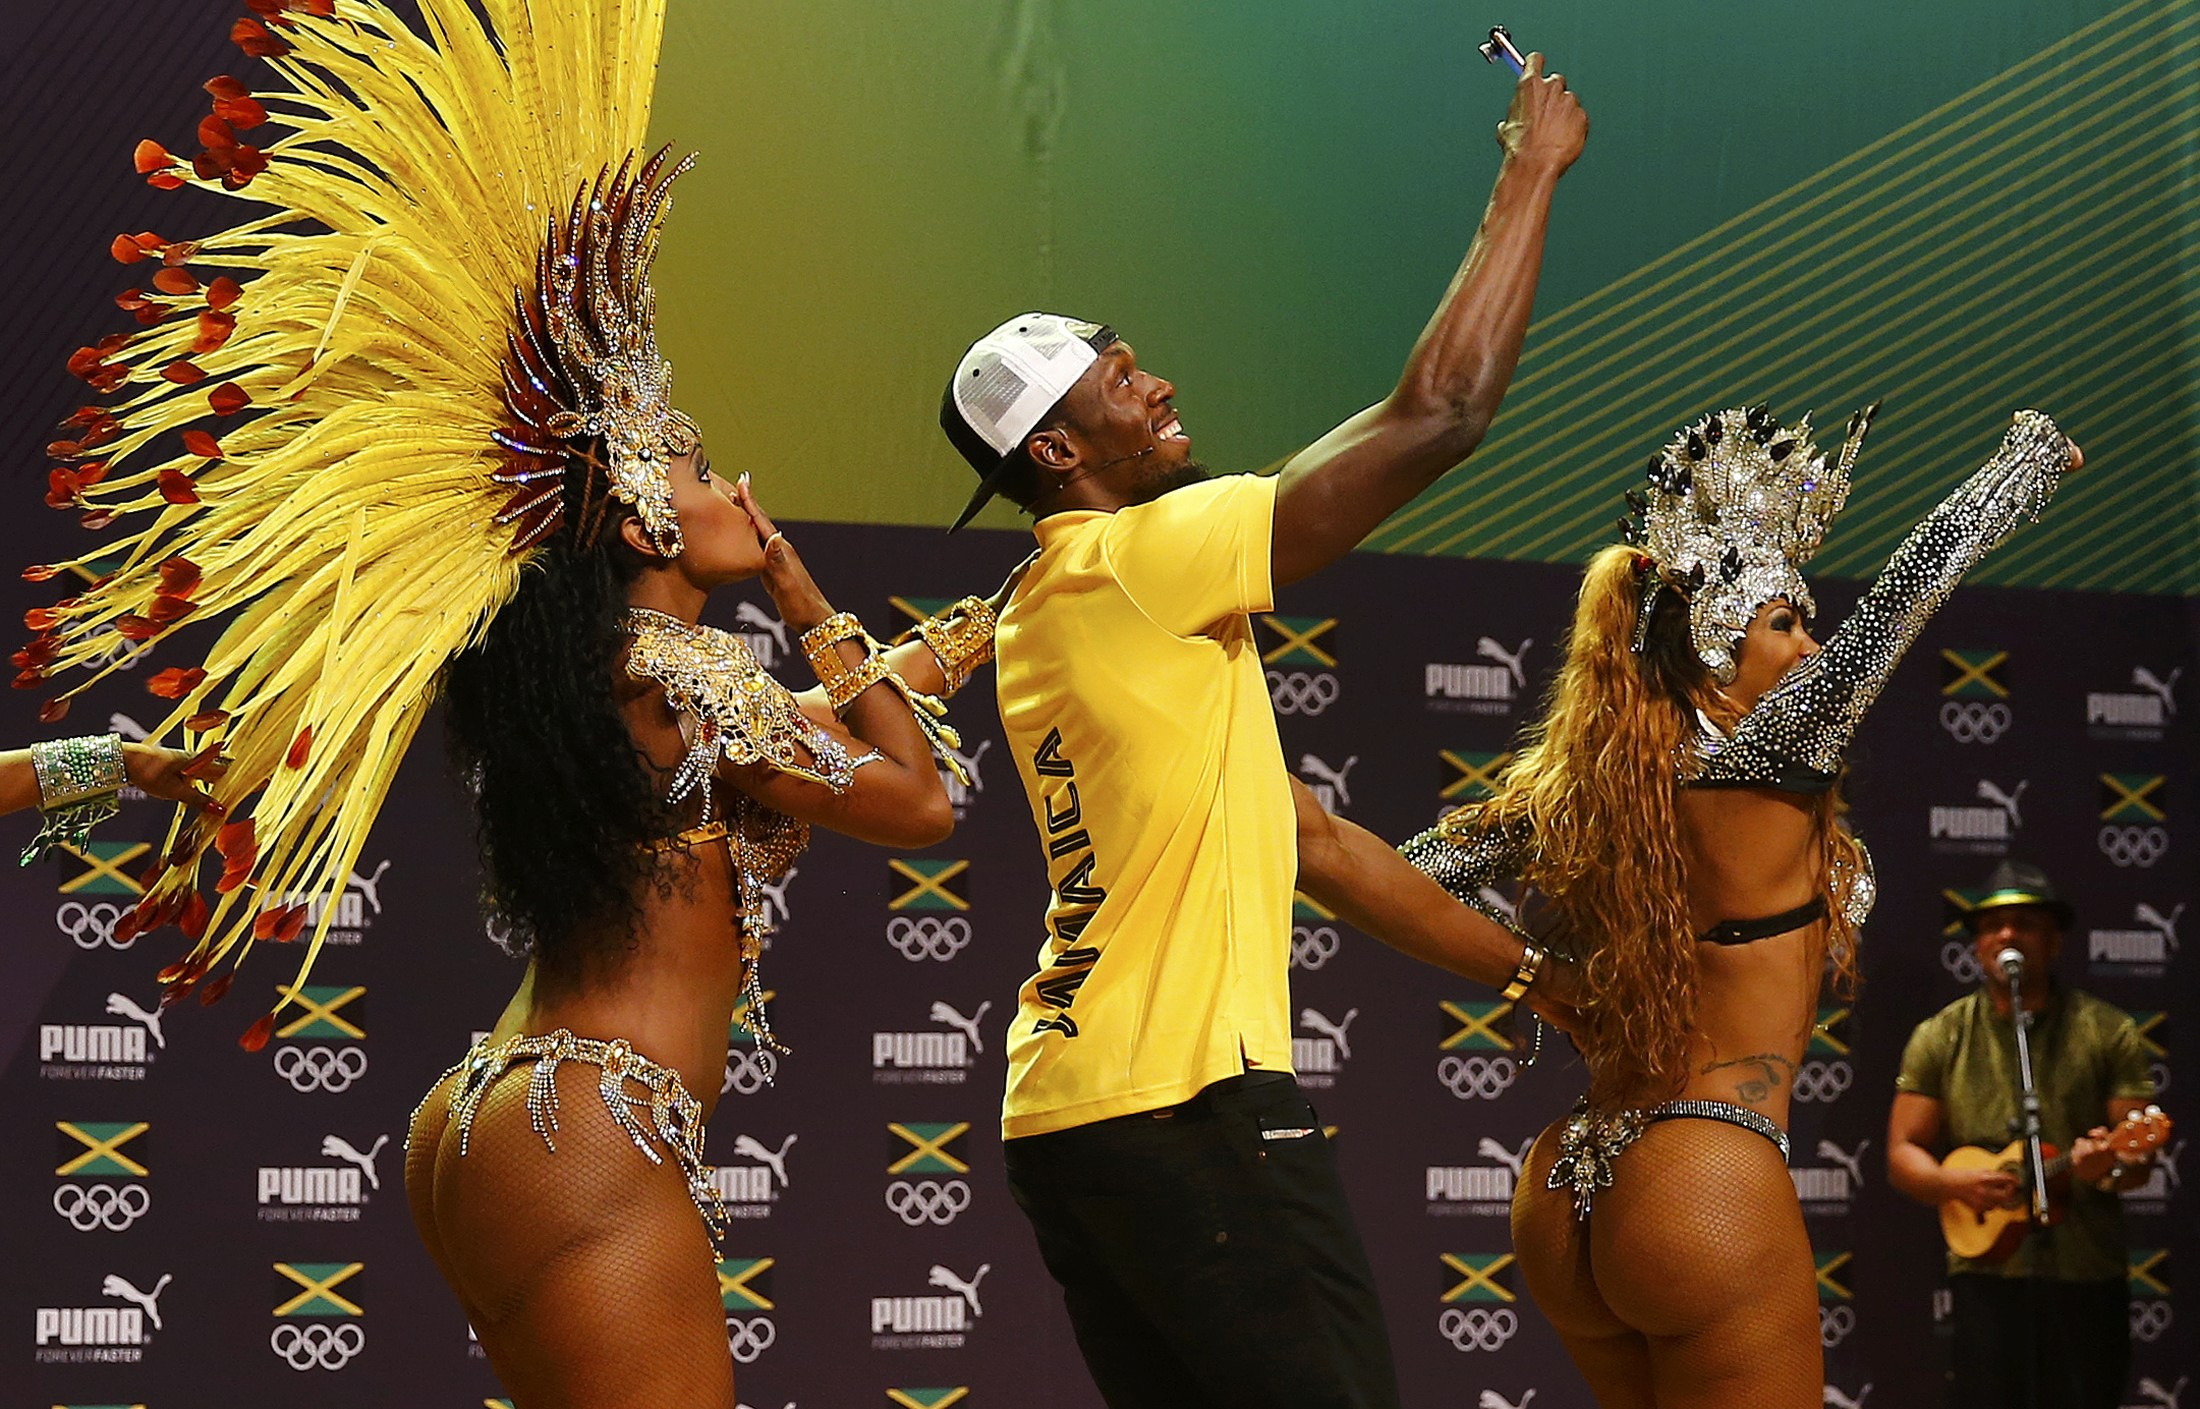 Jamaican track star Usain Bolt dances the samba at a press conference on Monday at the 2016 Summer Olympics in Rio de Janeiro. | REUTERS